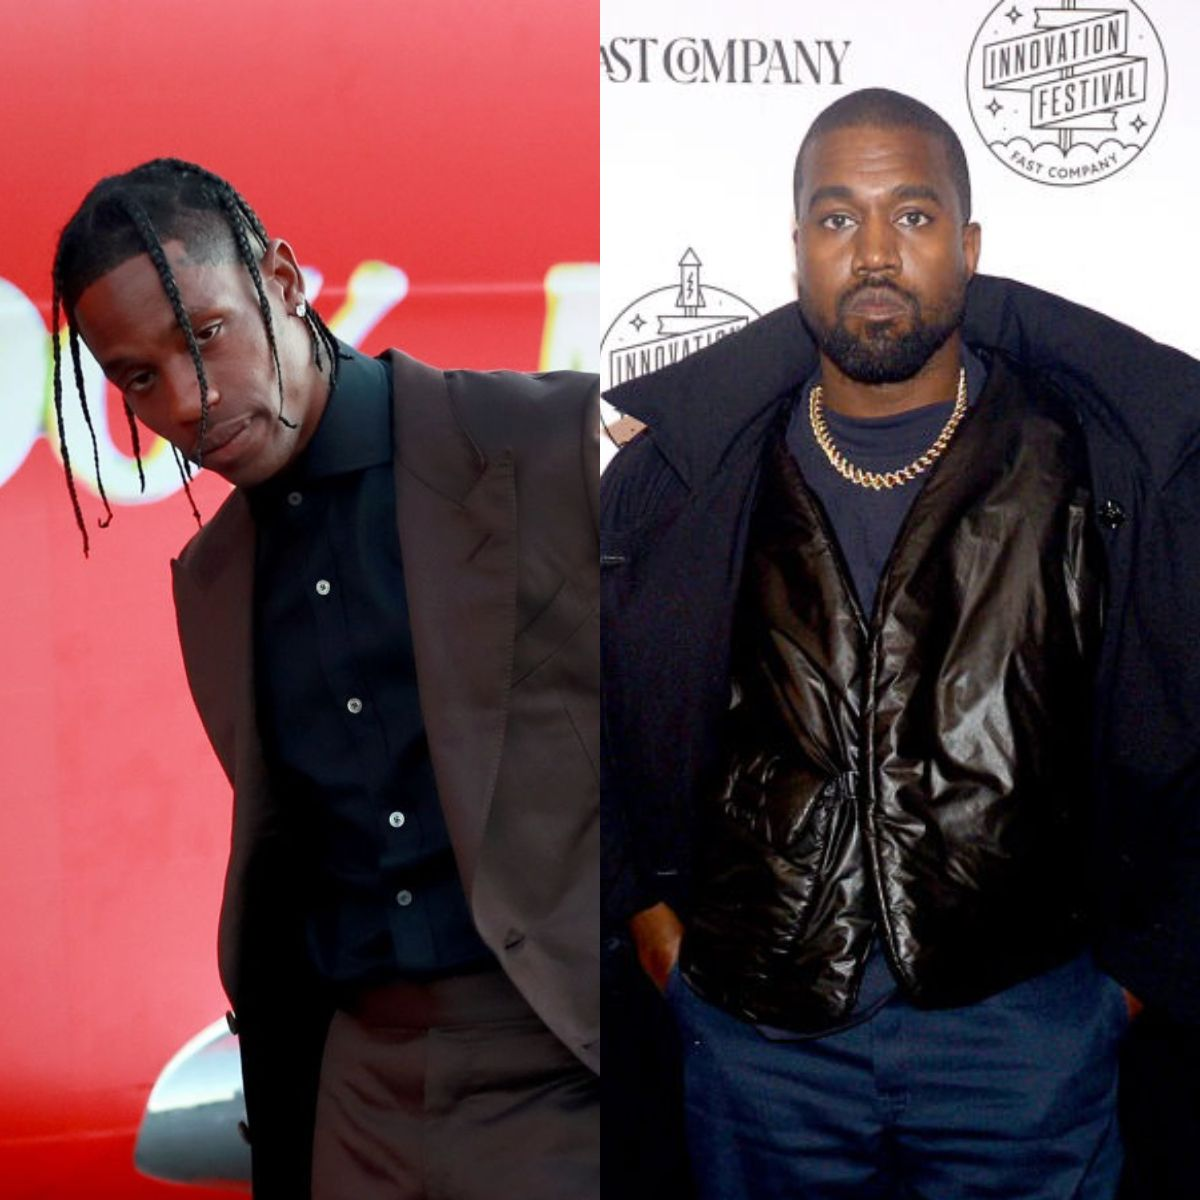 Kanye West And Travis Scott Release A Hard Hitting Music Video Inspired By The Blm Movement In 2020 Music Videos Kanye West Kanye